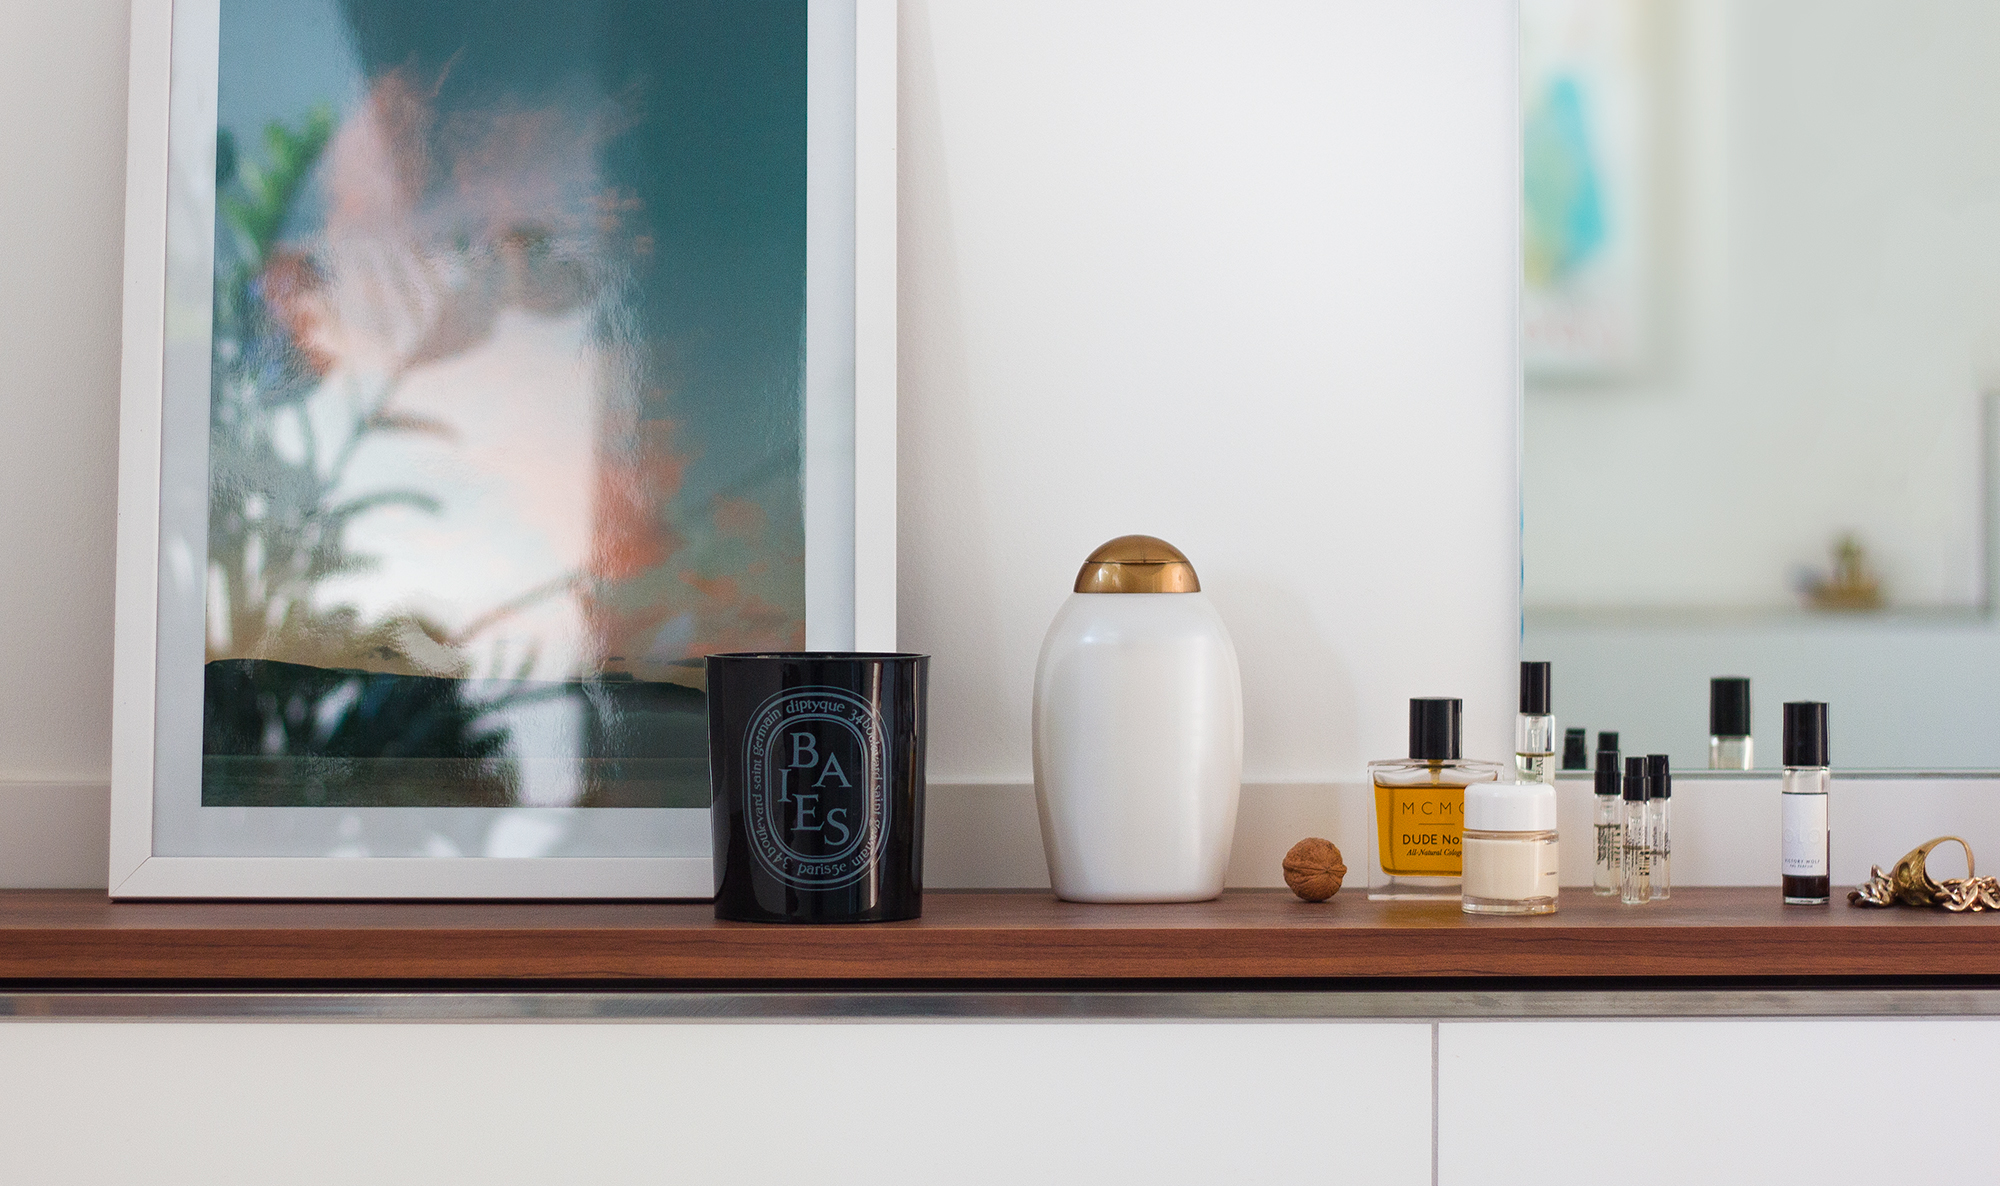 The  Diptyque Baies  candle sitting in the bathroom.